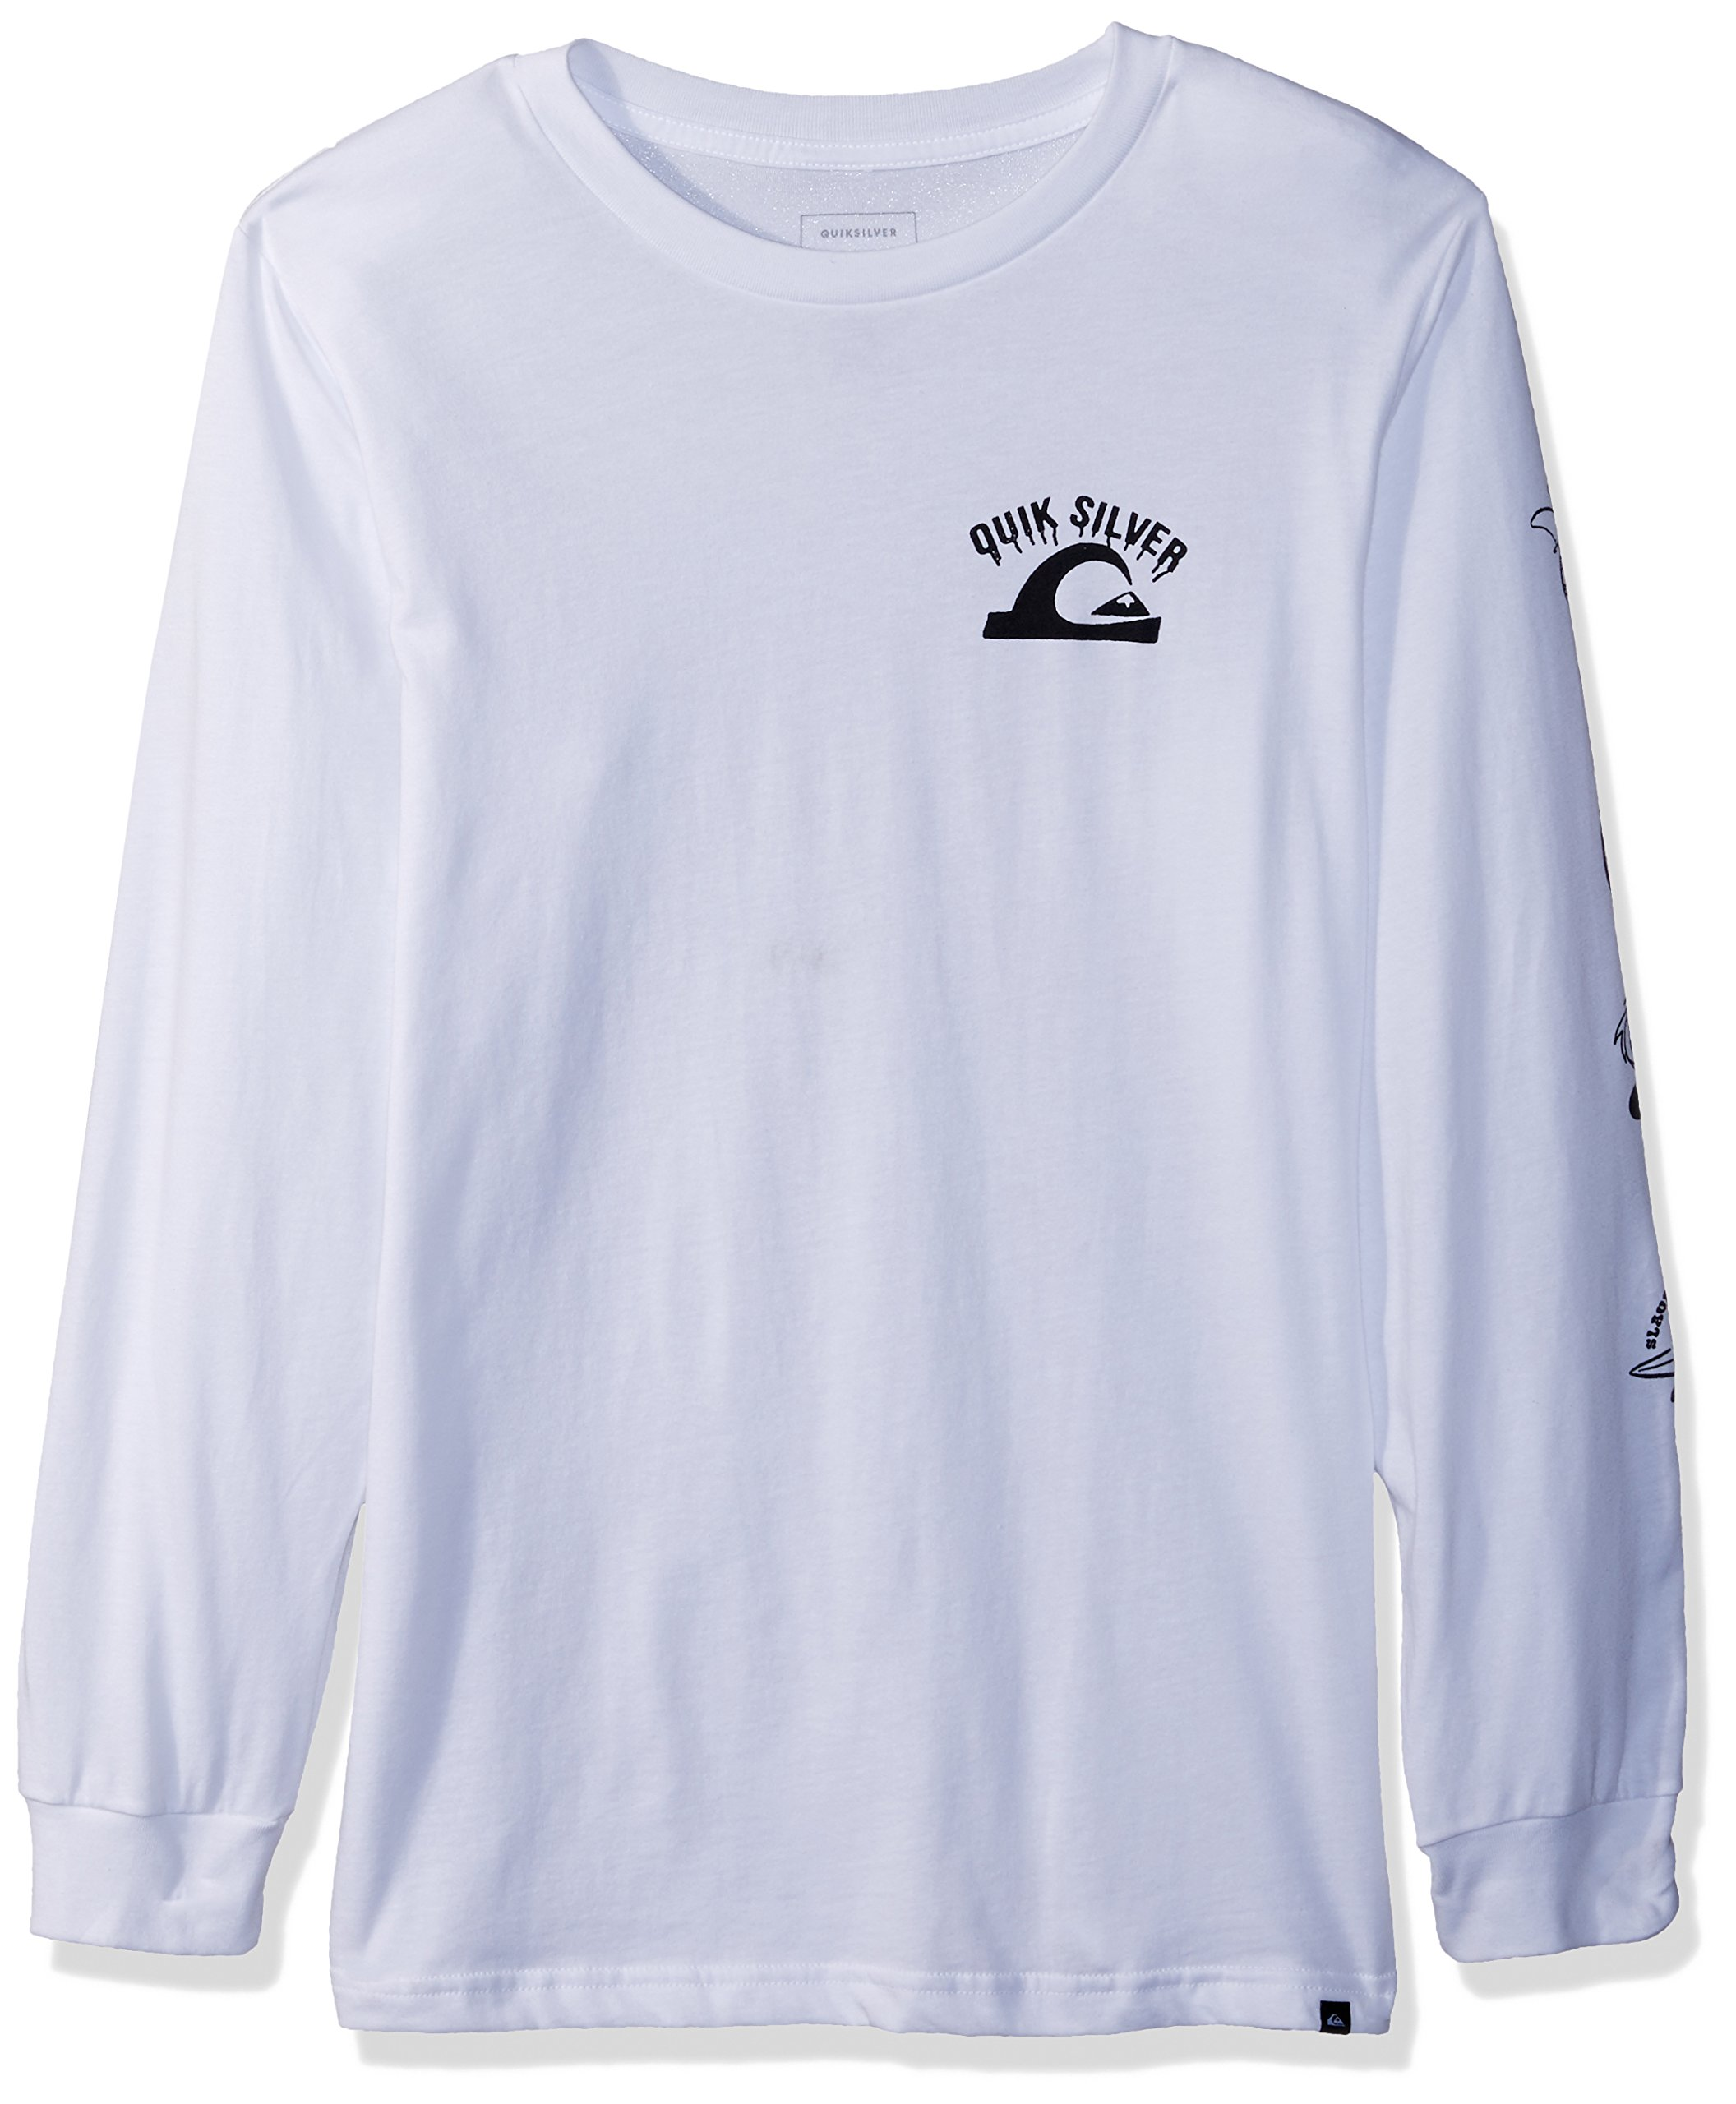 Quiksilver Big Boys' Crazy Face Youth Long Sleeve Tee Shirt, White, L/14